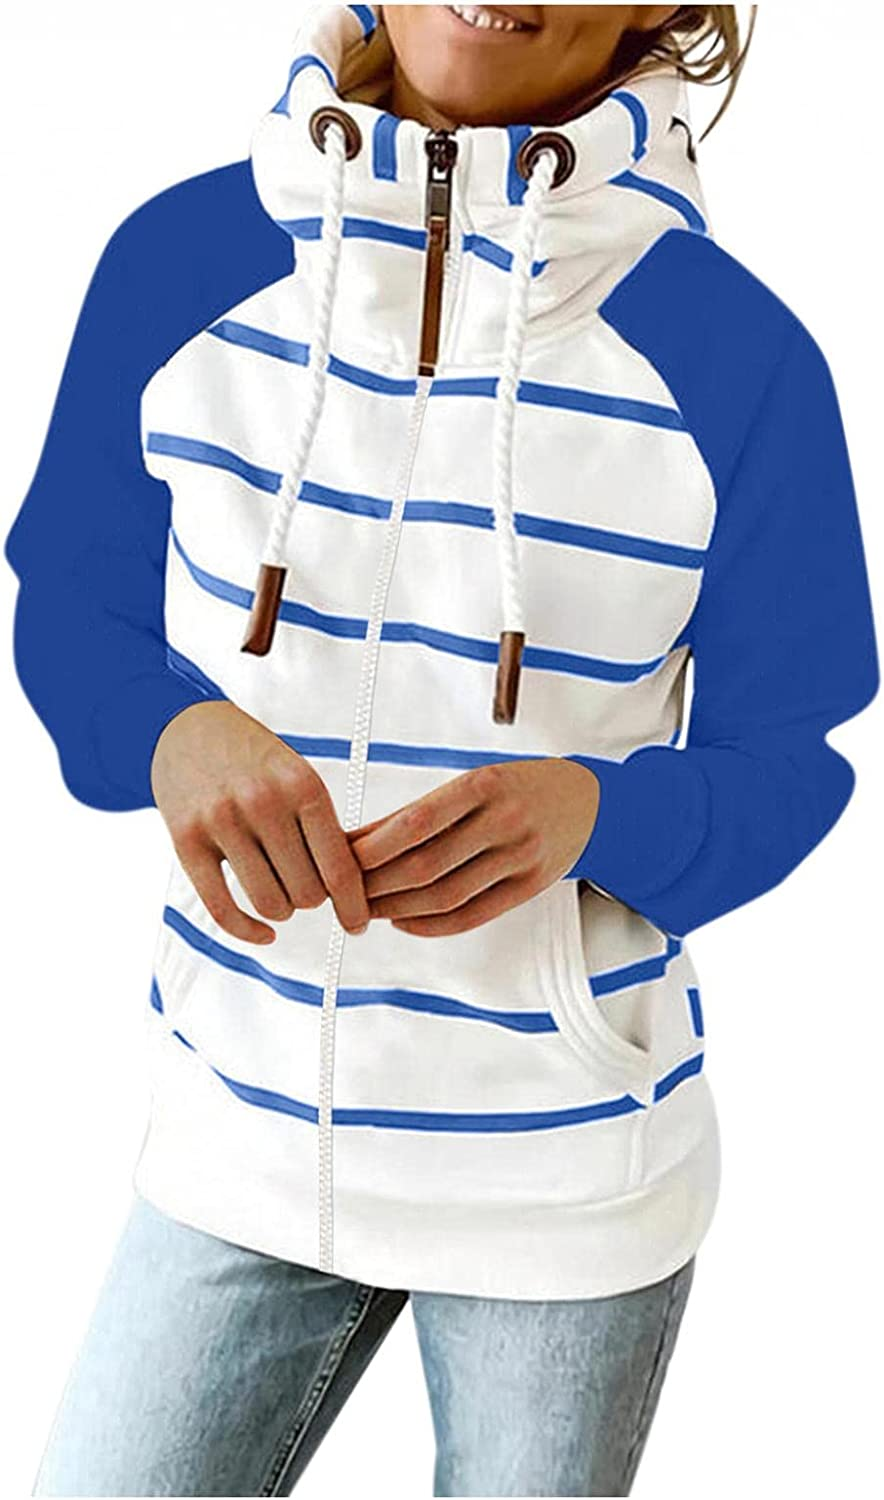 Gerichy Hoodies for Women, Womens Long Sleeve Drawstring Striped Sweatshirts Cool Oversized Fall Hoodies with Pocket